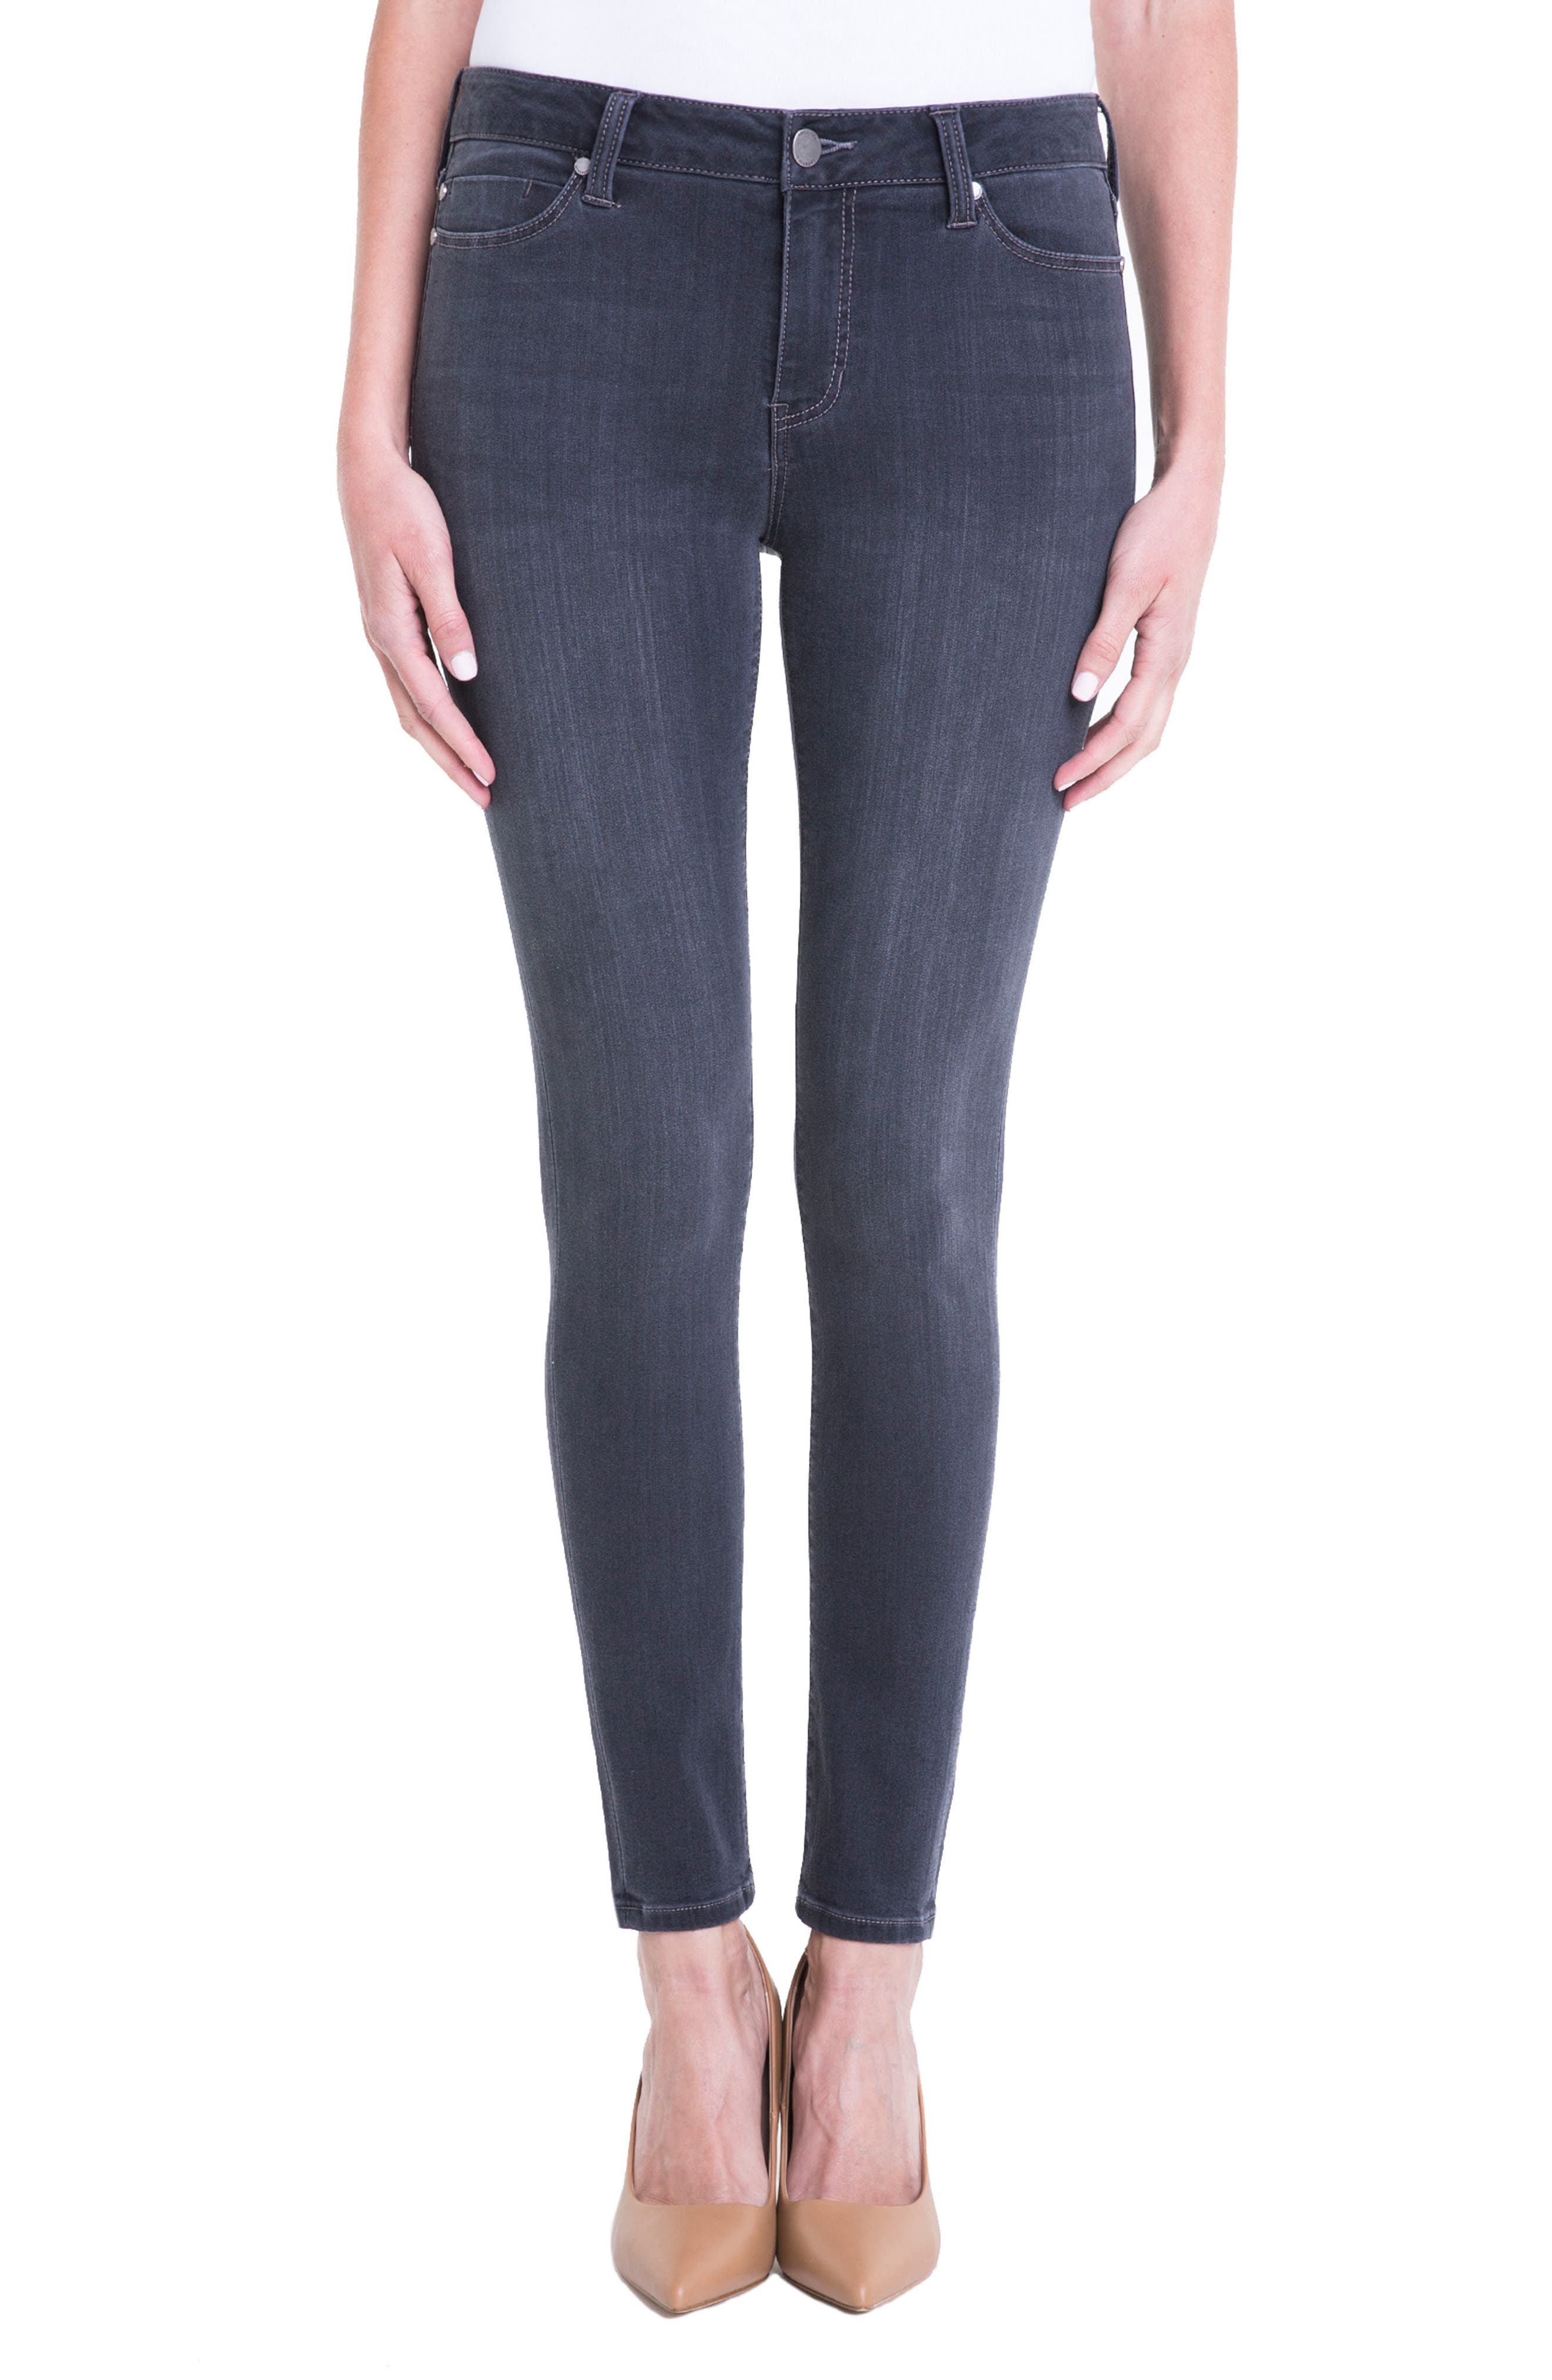 Main Image - Liverpool Jeans Company Abby Stretch Skinny Jeans (Meteorite)